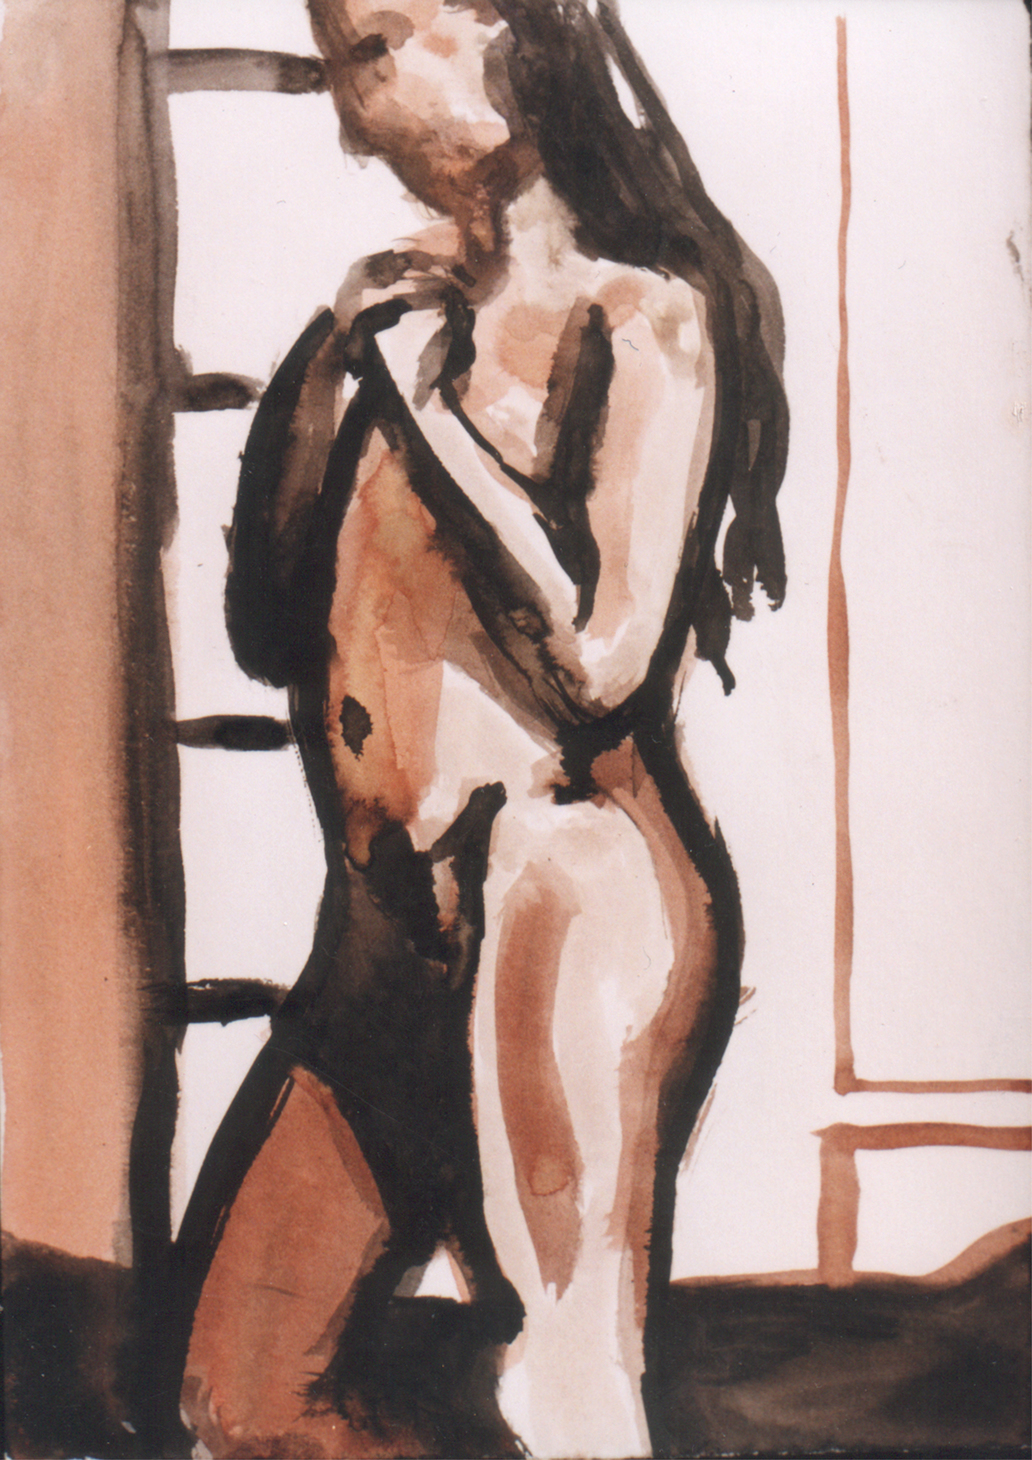 AKT IN TUSCHE / NUDE IN INK